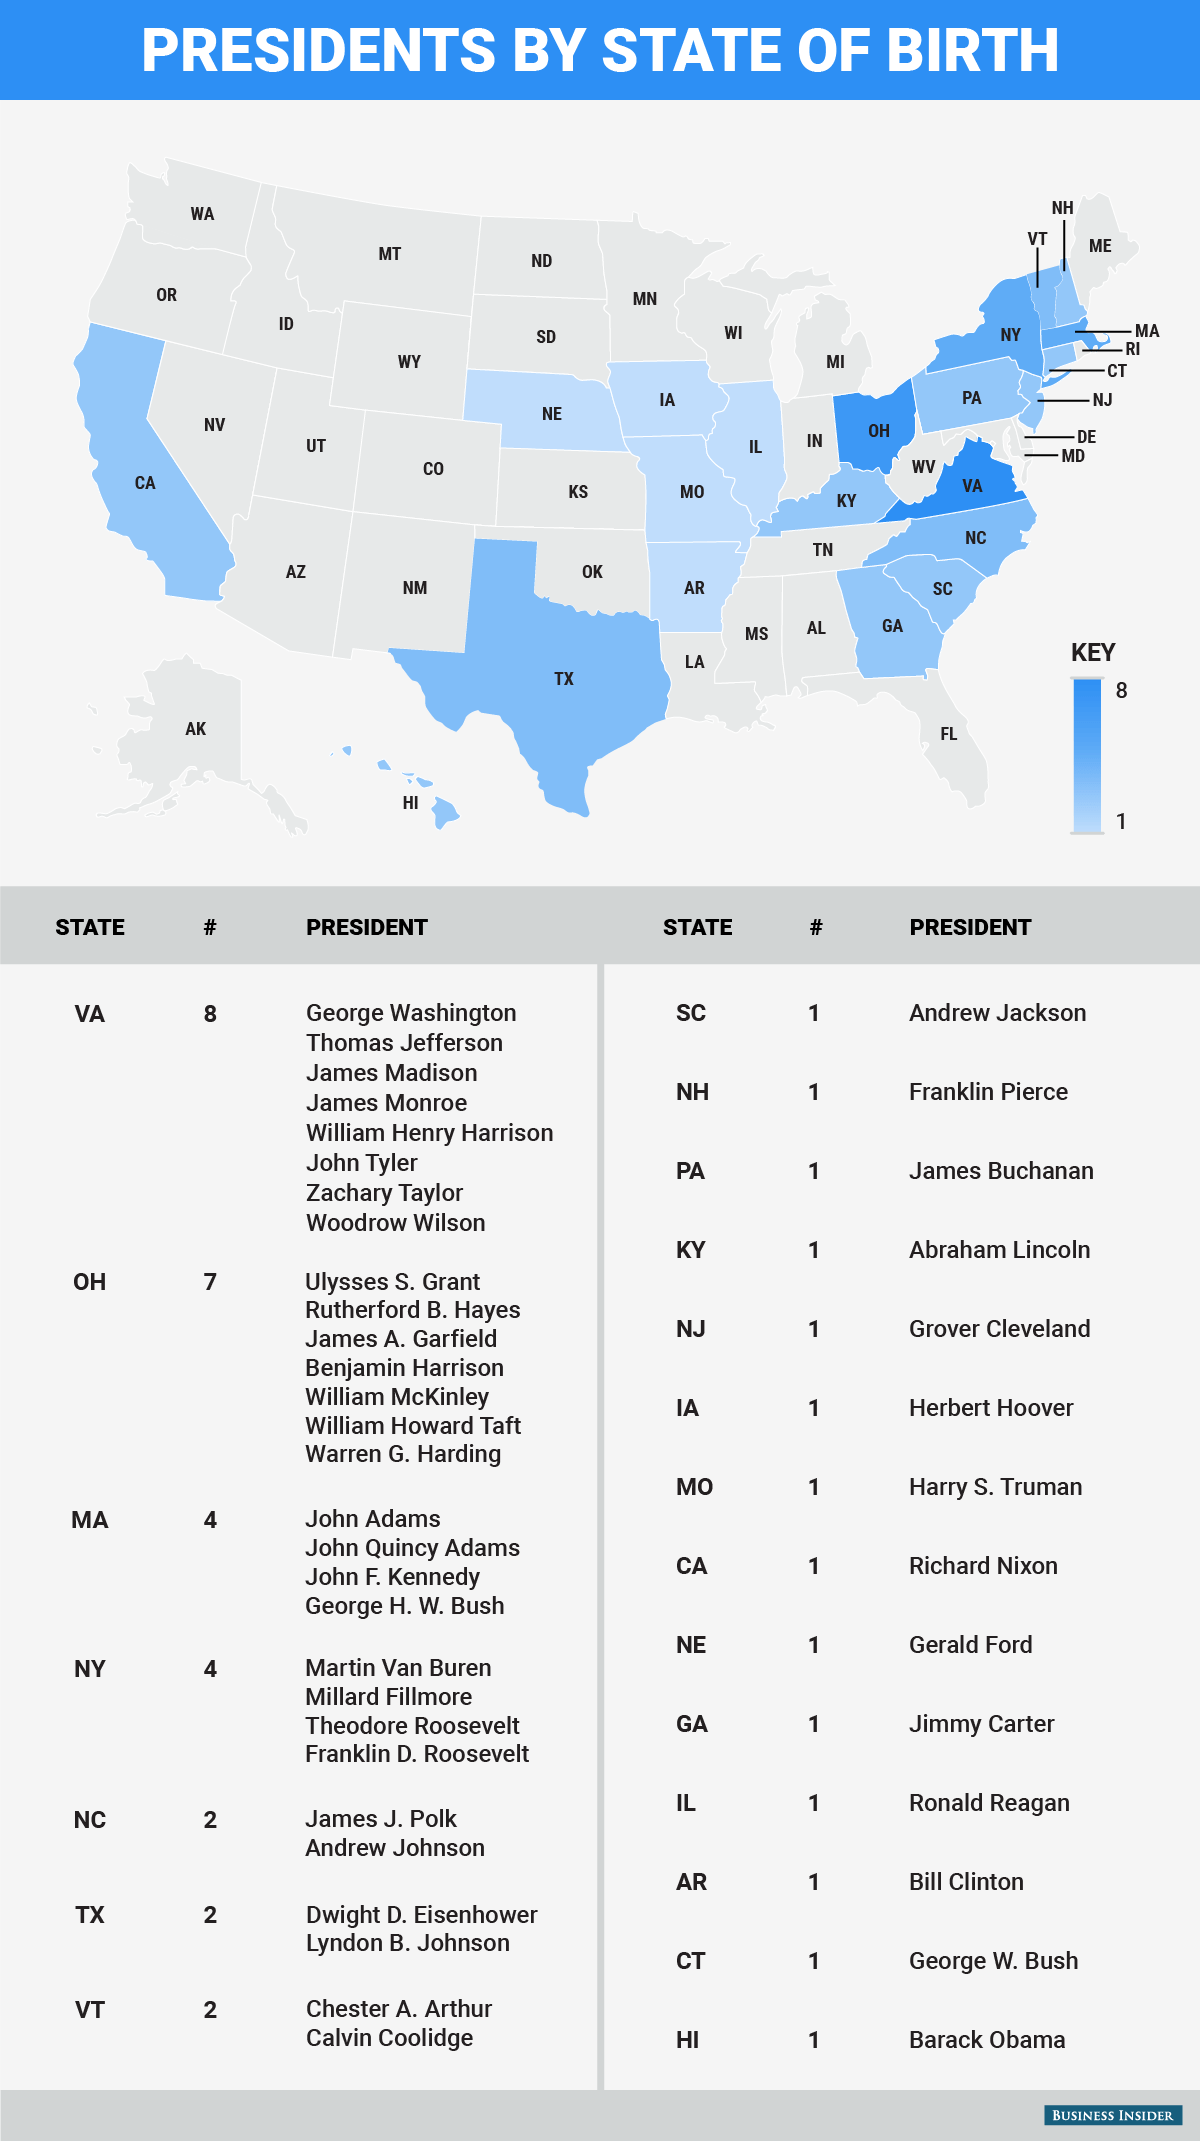 States That Produced The Most Presidents